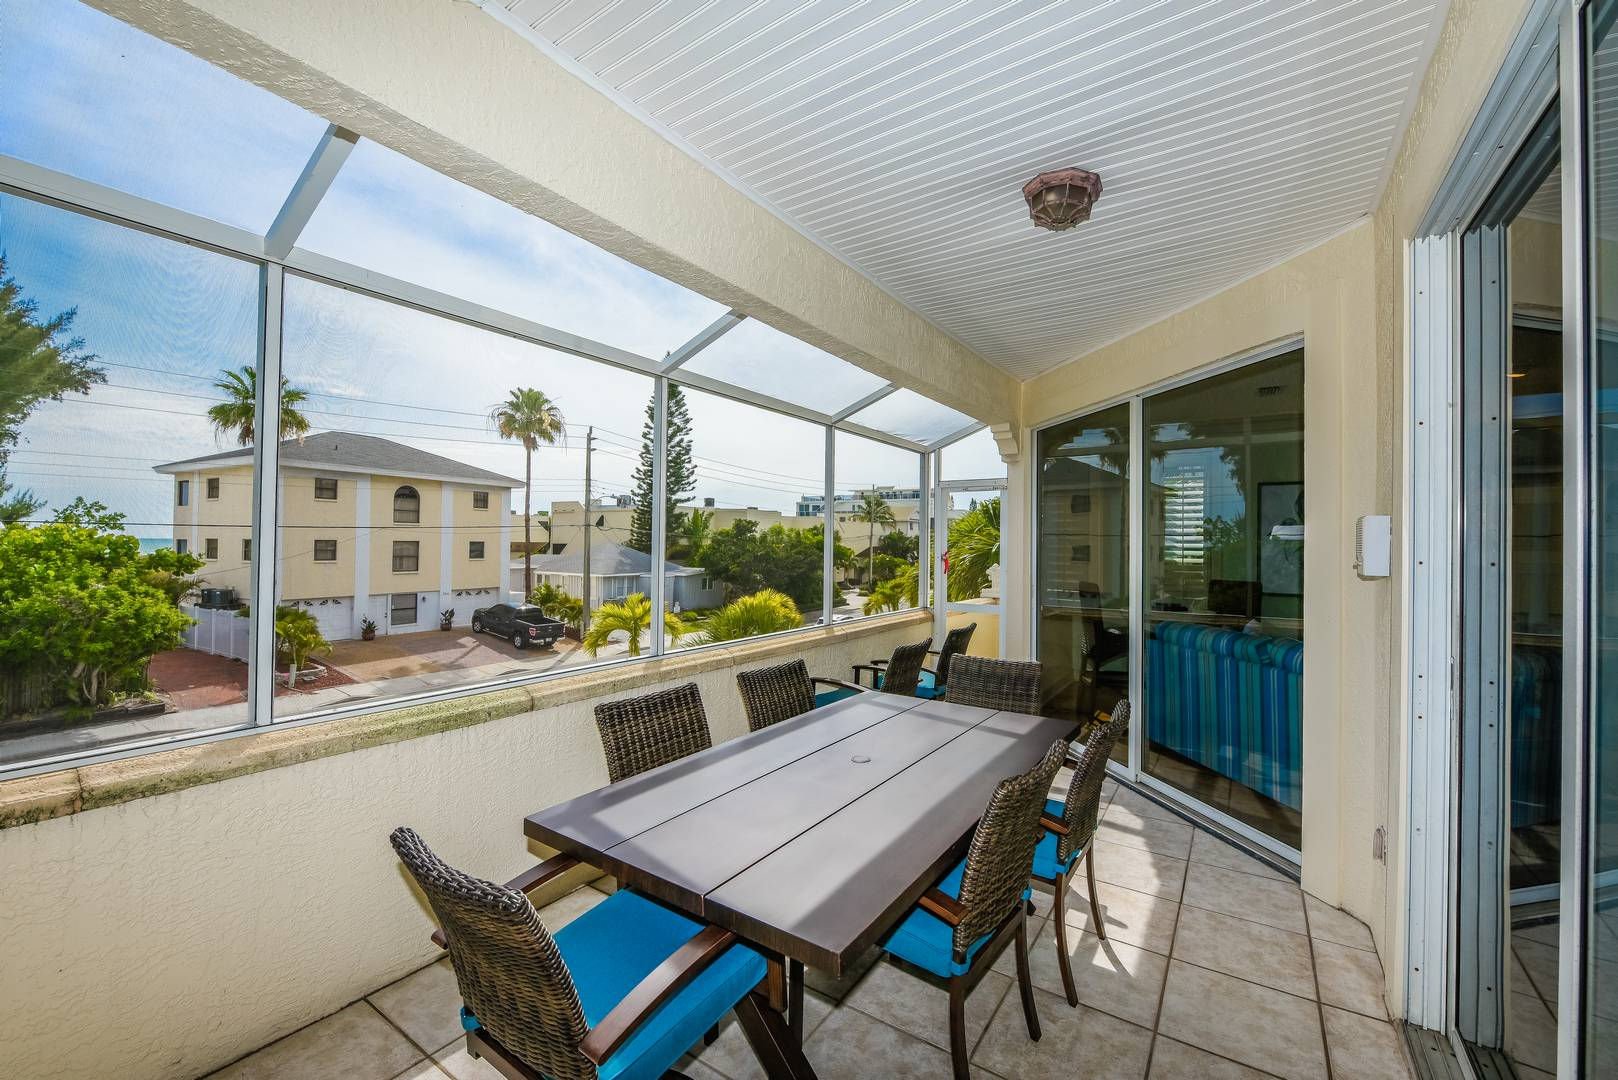 Balcony space off Living Room - Great for Dining and Sunset